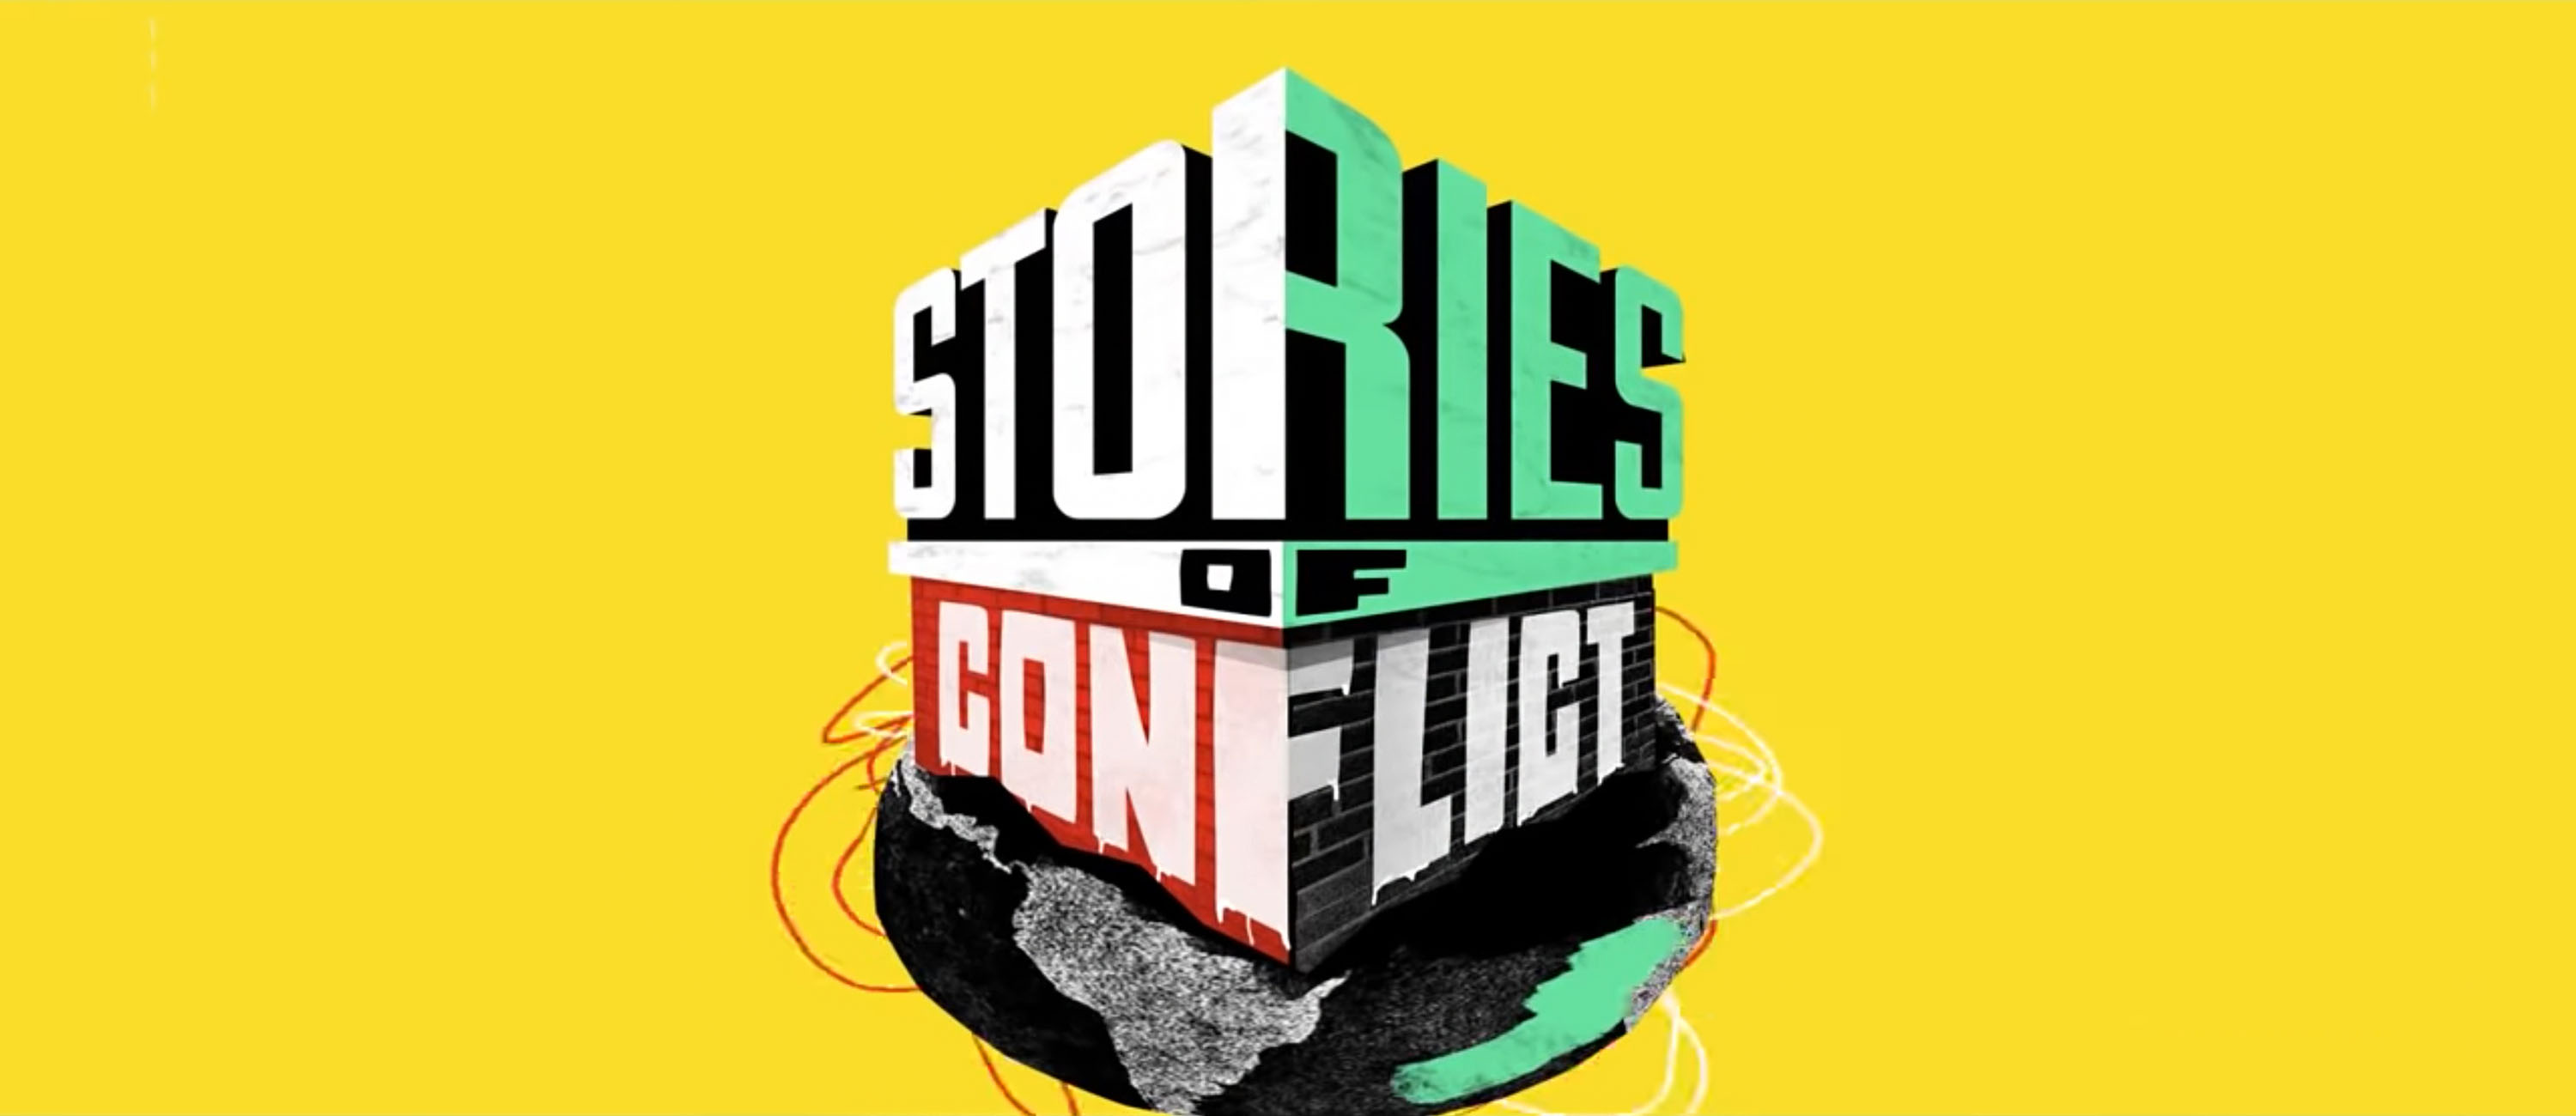 Stories-of-conflict-Arte-web-serie